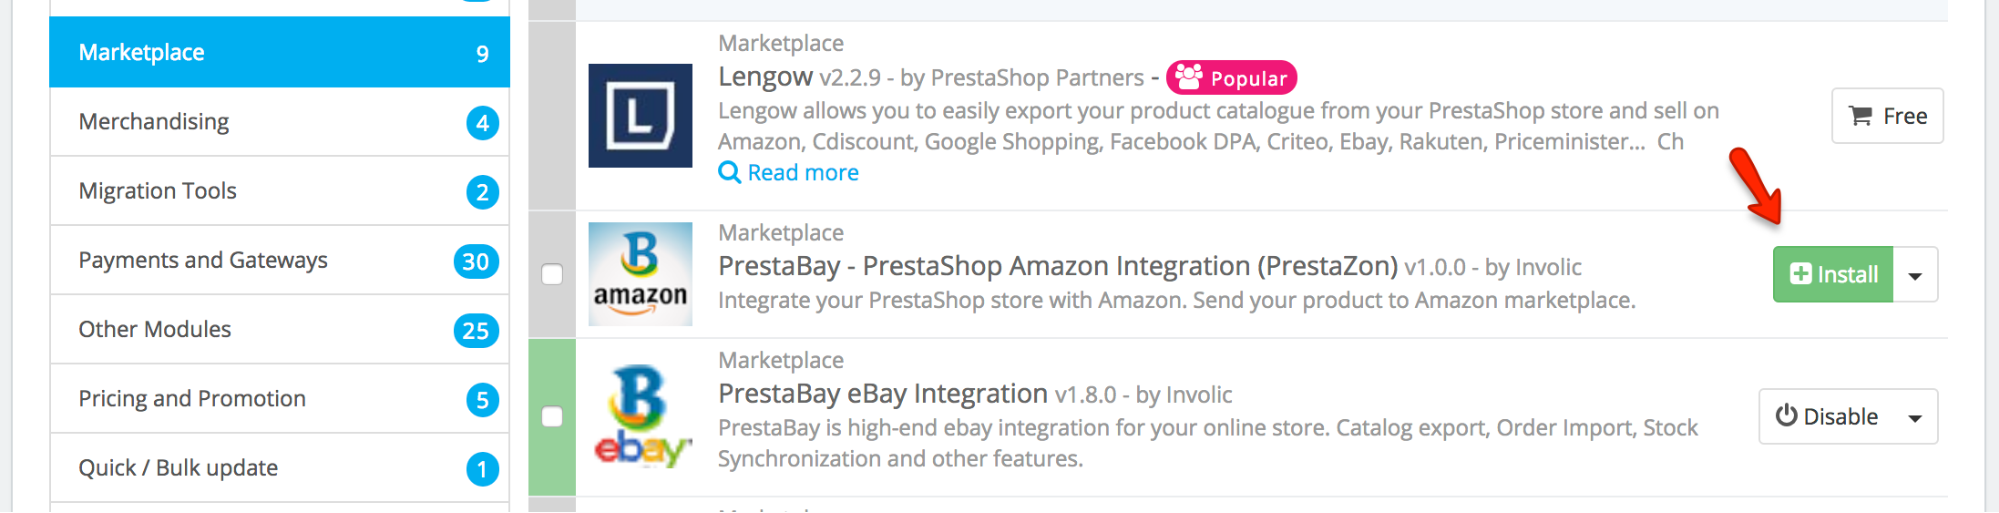 PrestaShop Amazon module — Installing PrestaBay Amazon Integration module